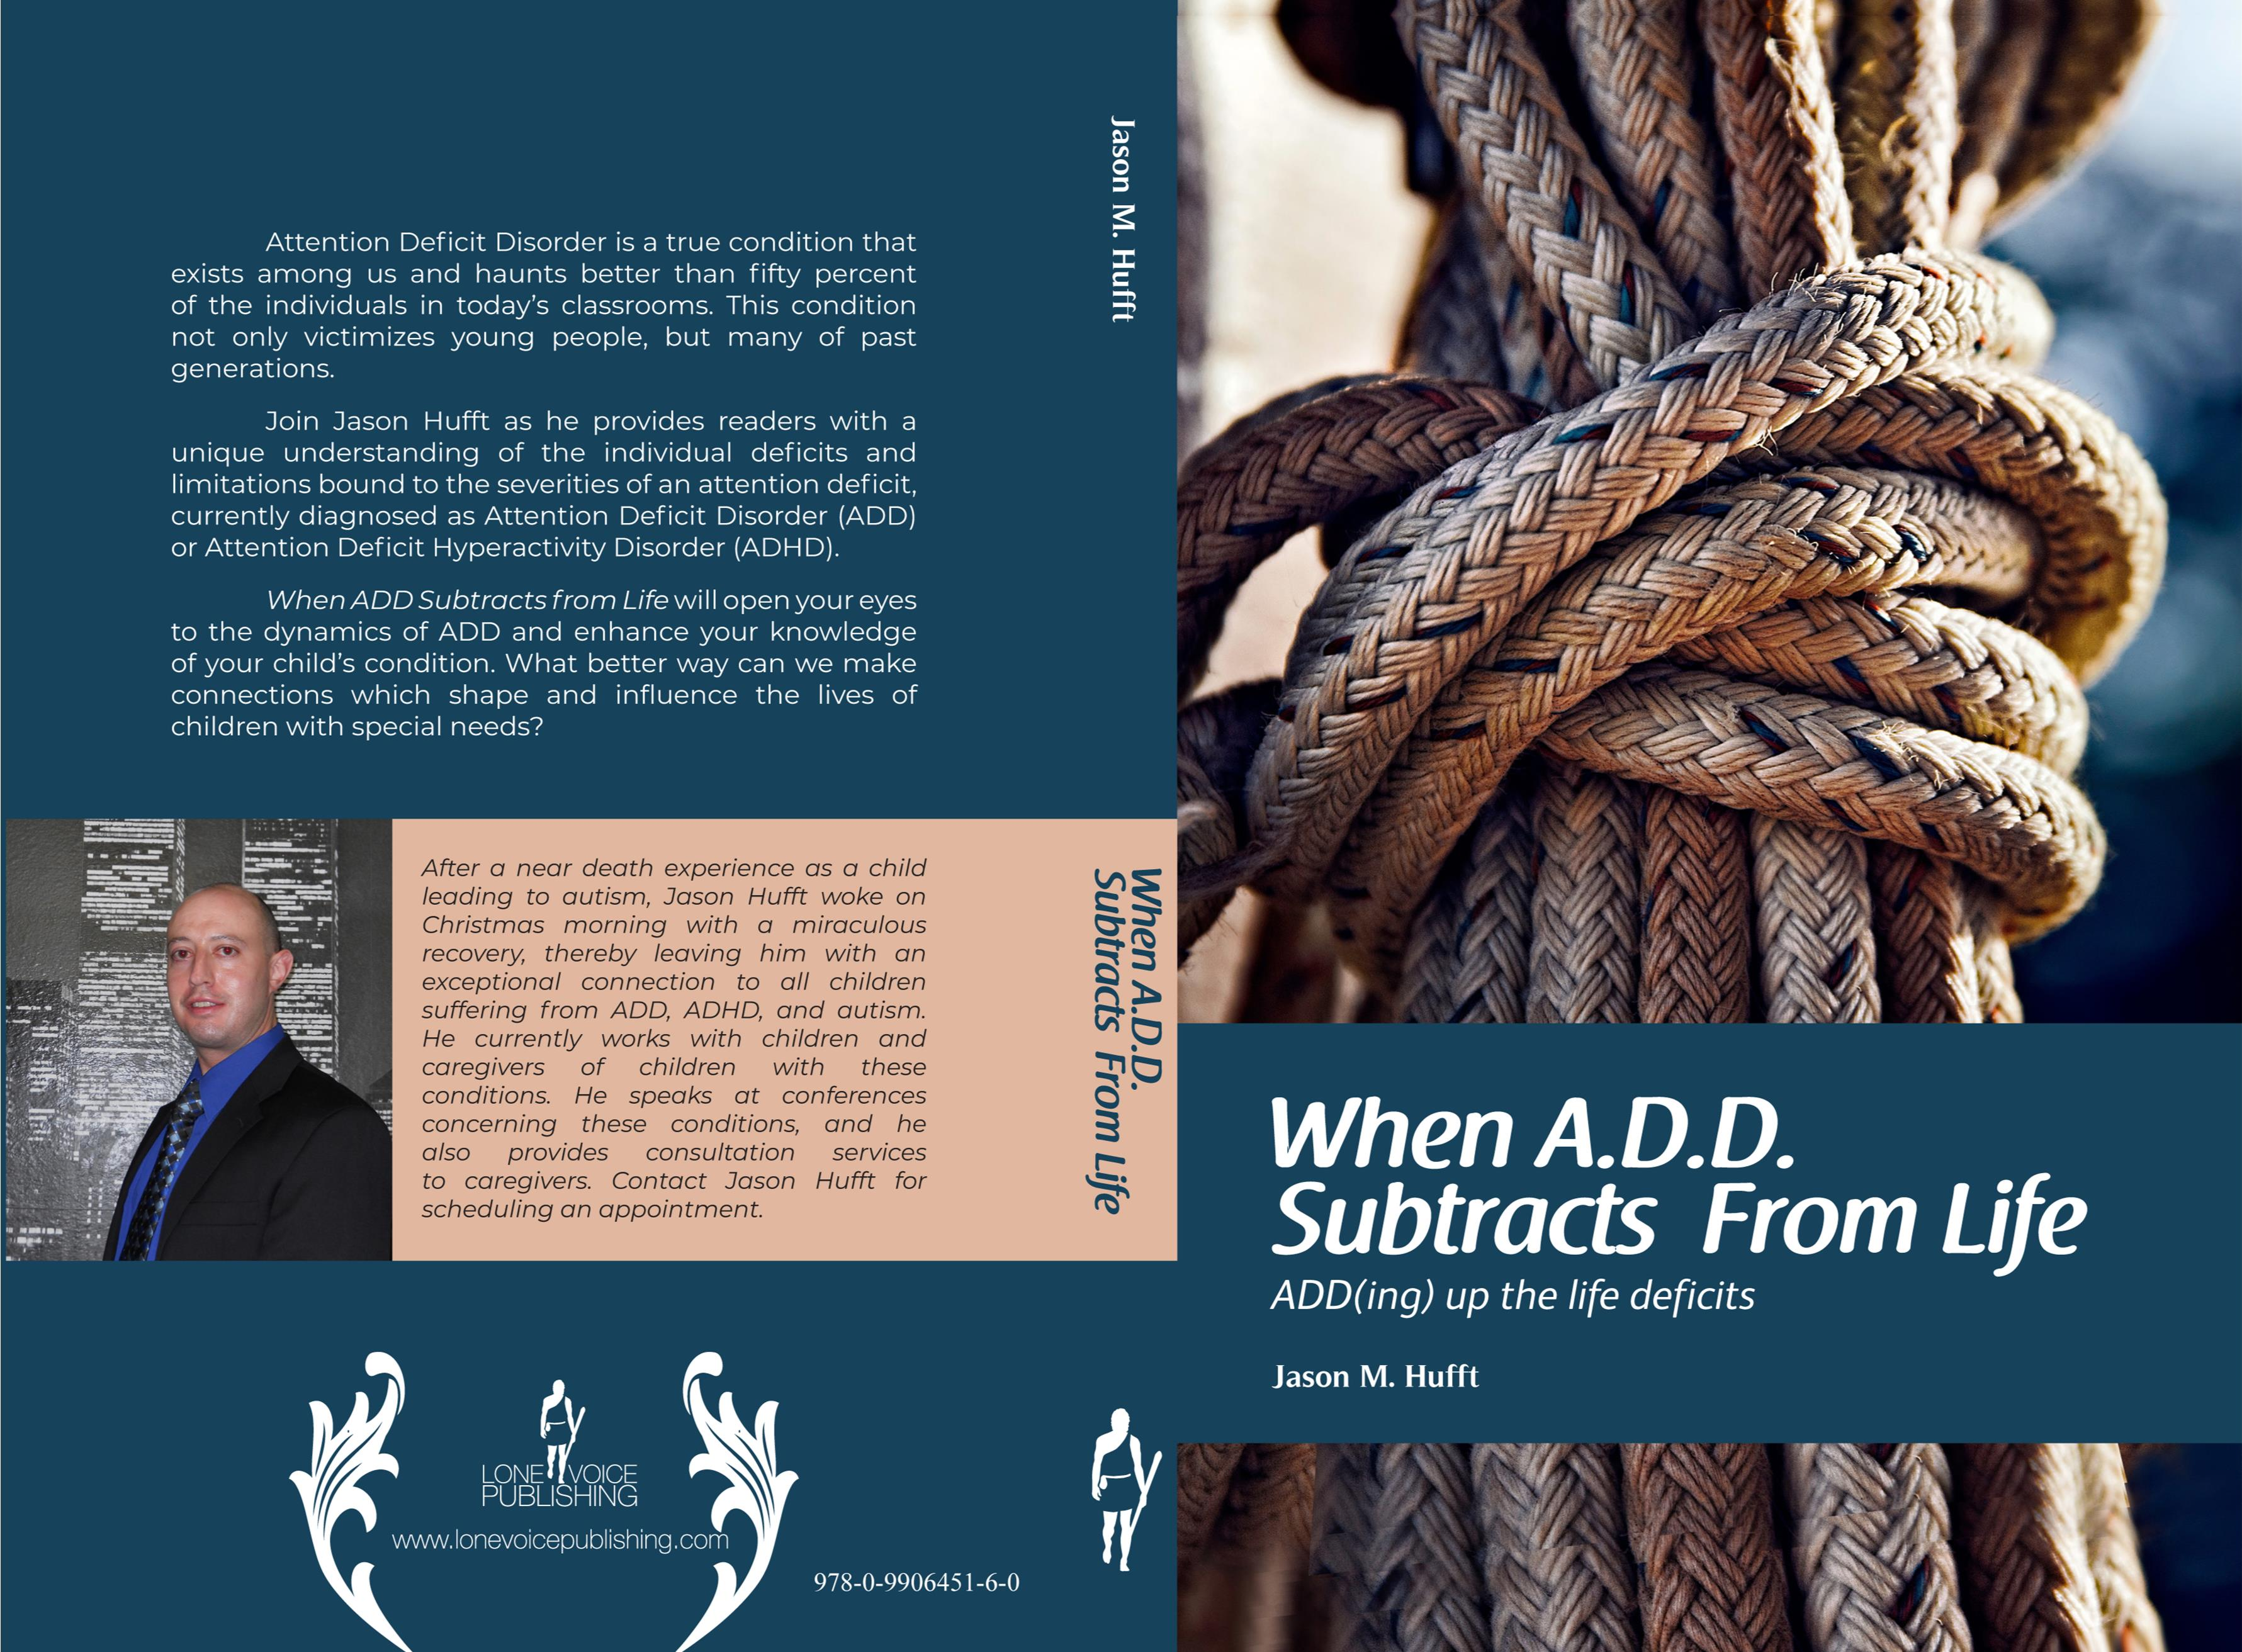 When A.D.D. subtracts from your life cover image